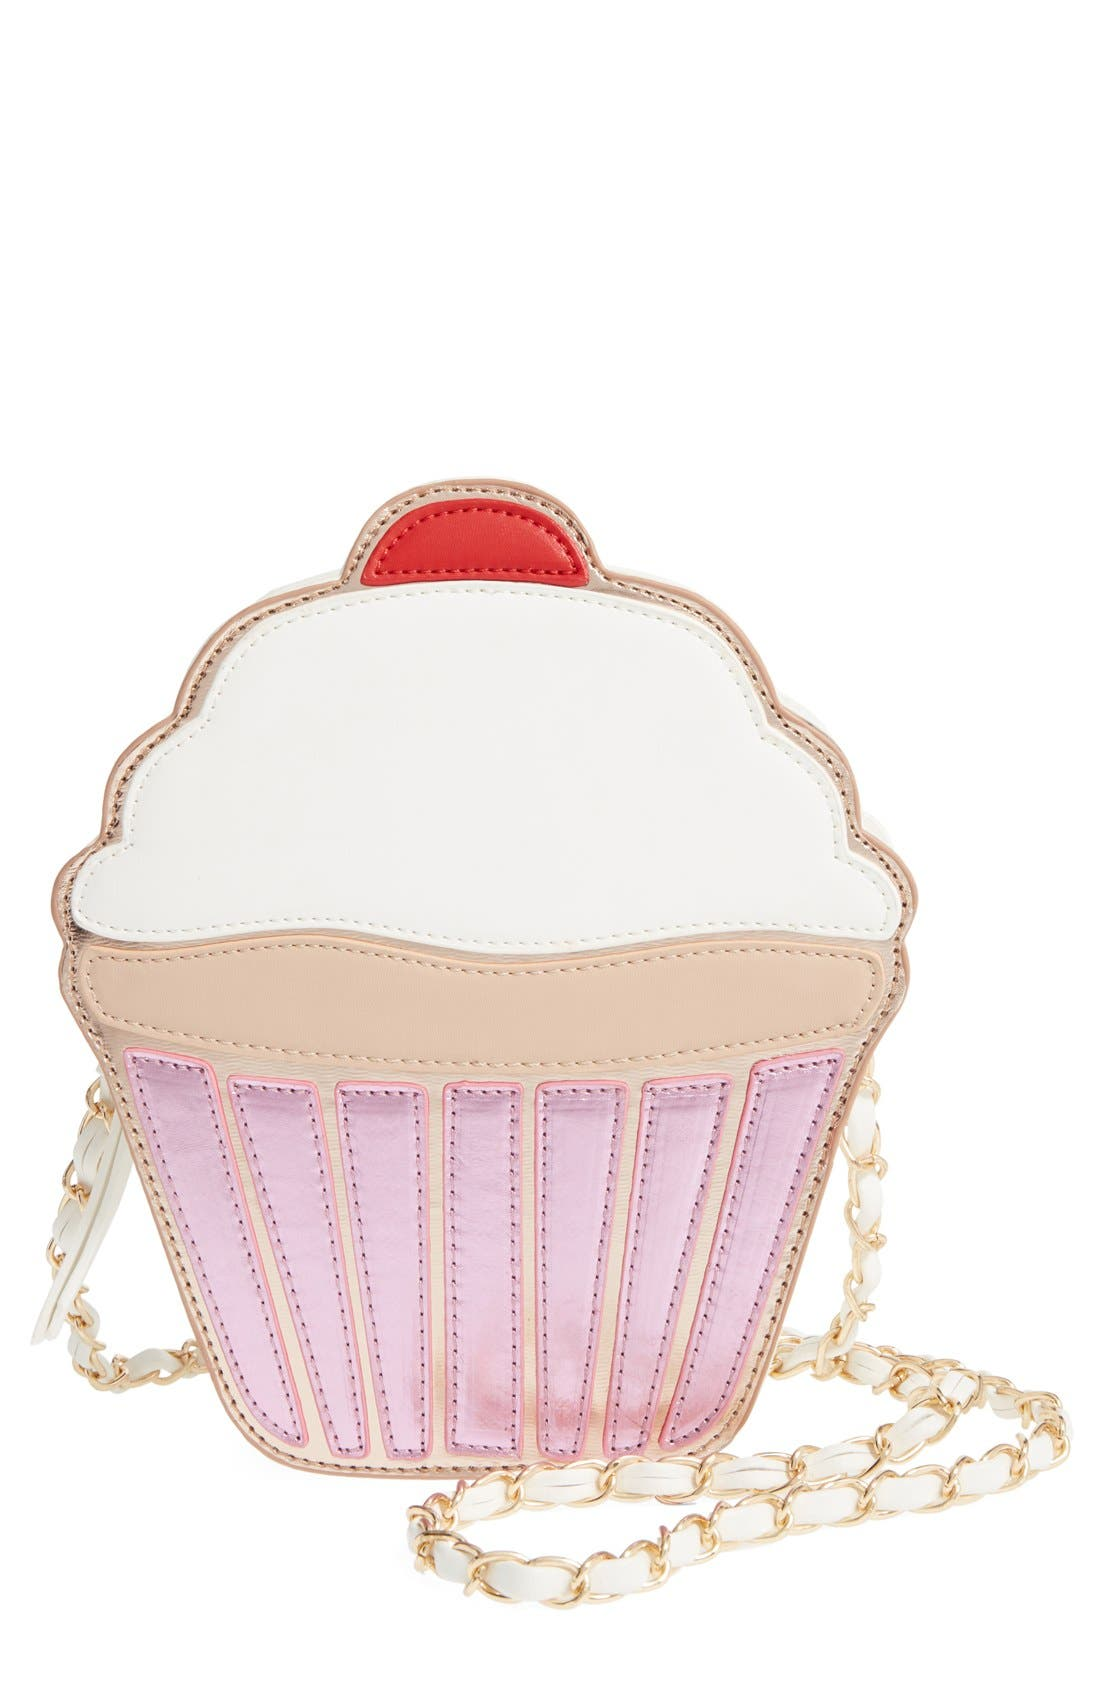 Main Image - Nila Anthony 'Cupcake' Faux Leather Crossbody Bag